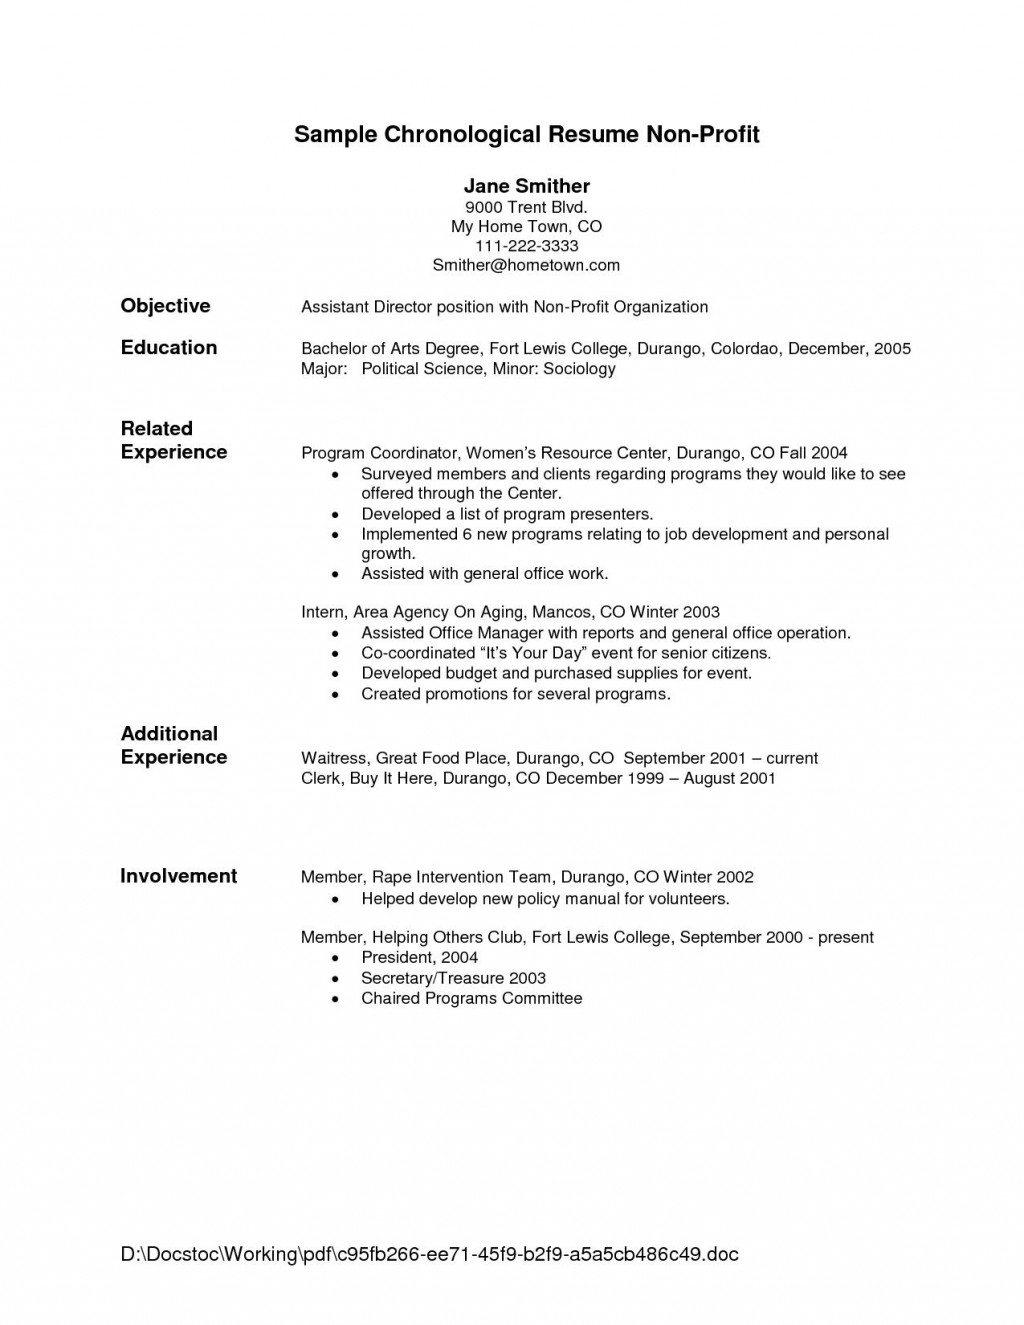 001 Impressive Free Chronological Resume Template Inspiration  2020 CvLarge